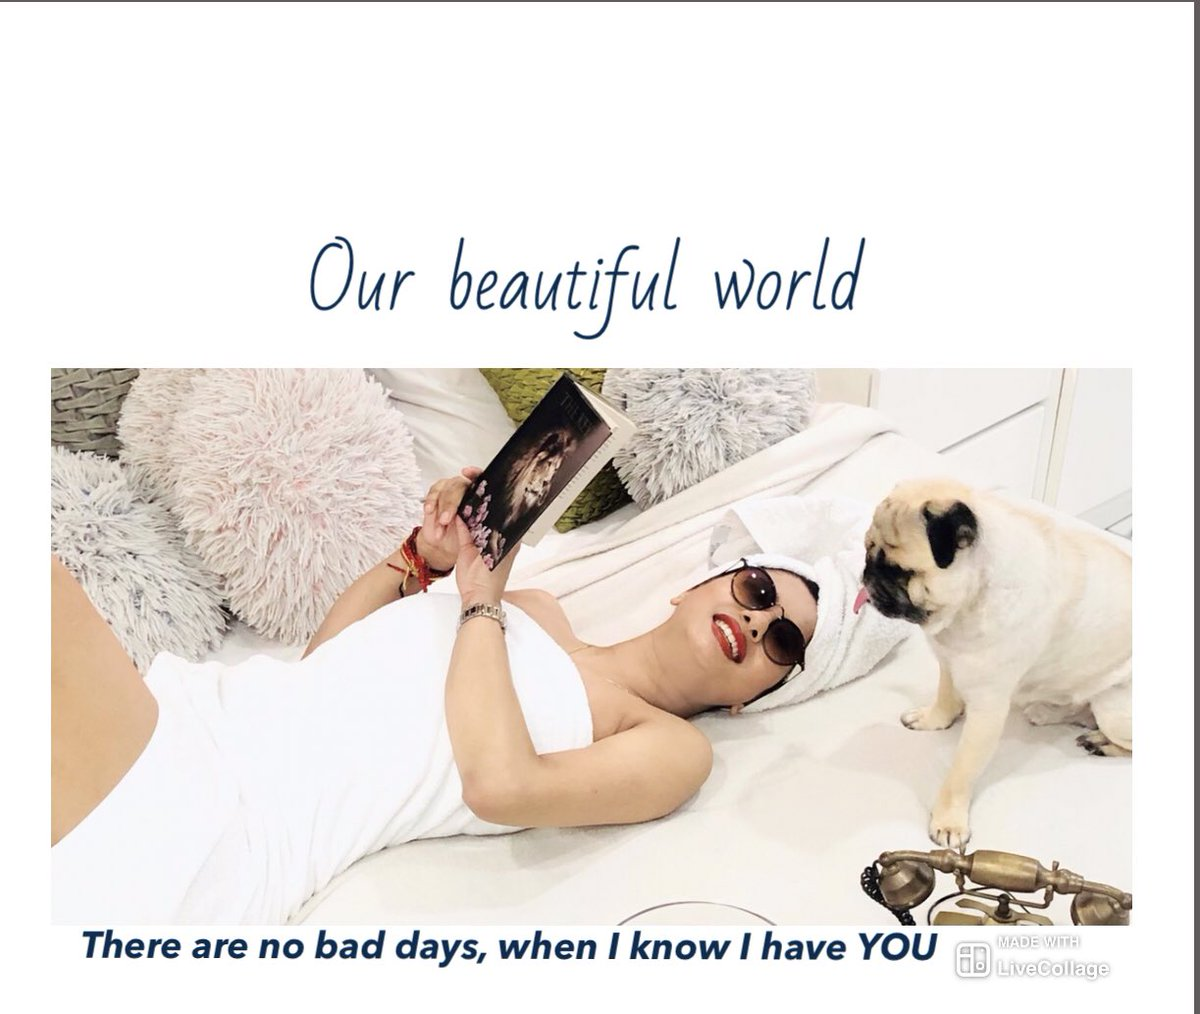 Not a Diamond but you are my Best Friend#dude #pug #ourtime #homesweethome #beautifulife #blessed #unconditionallove #djgouripic.twitter.com/zNOZbzgCwB